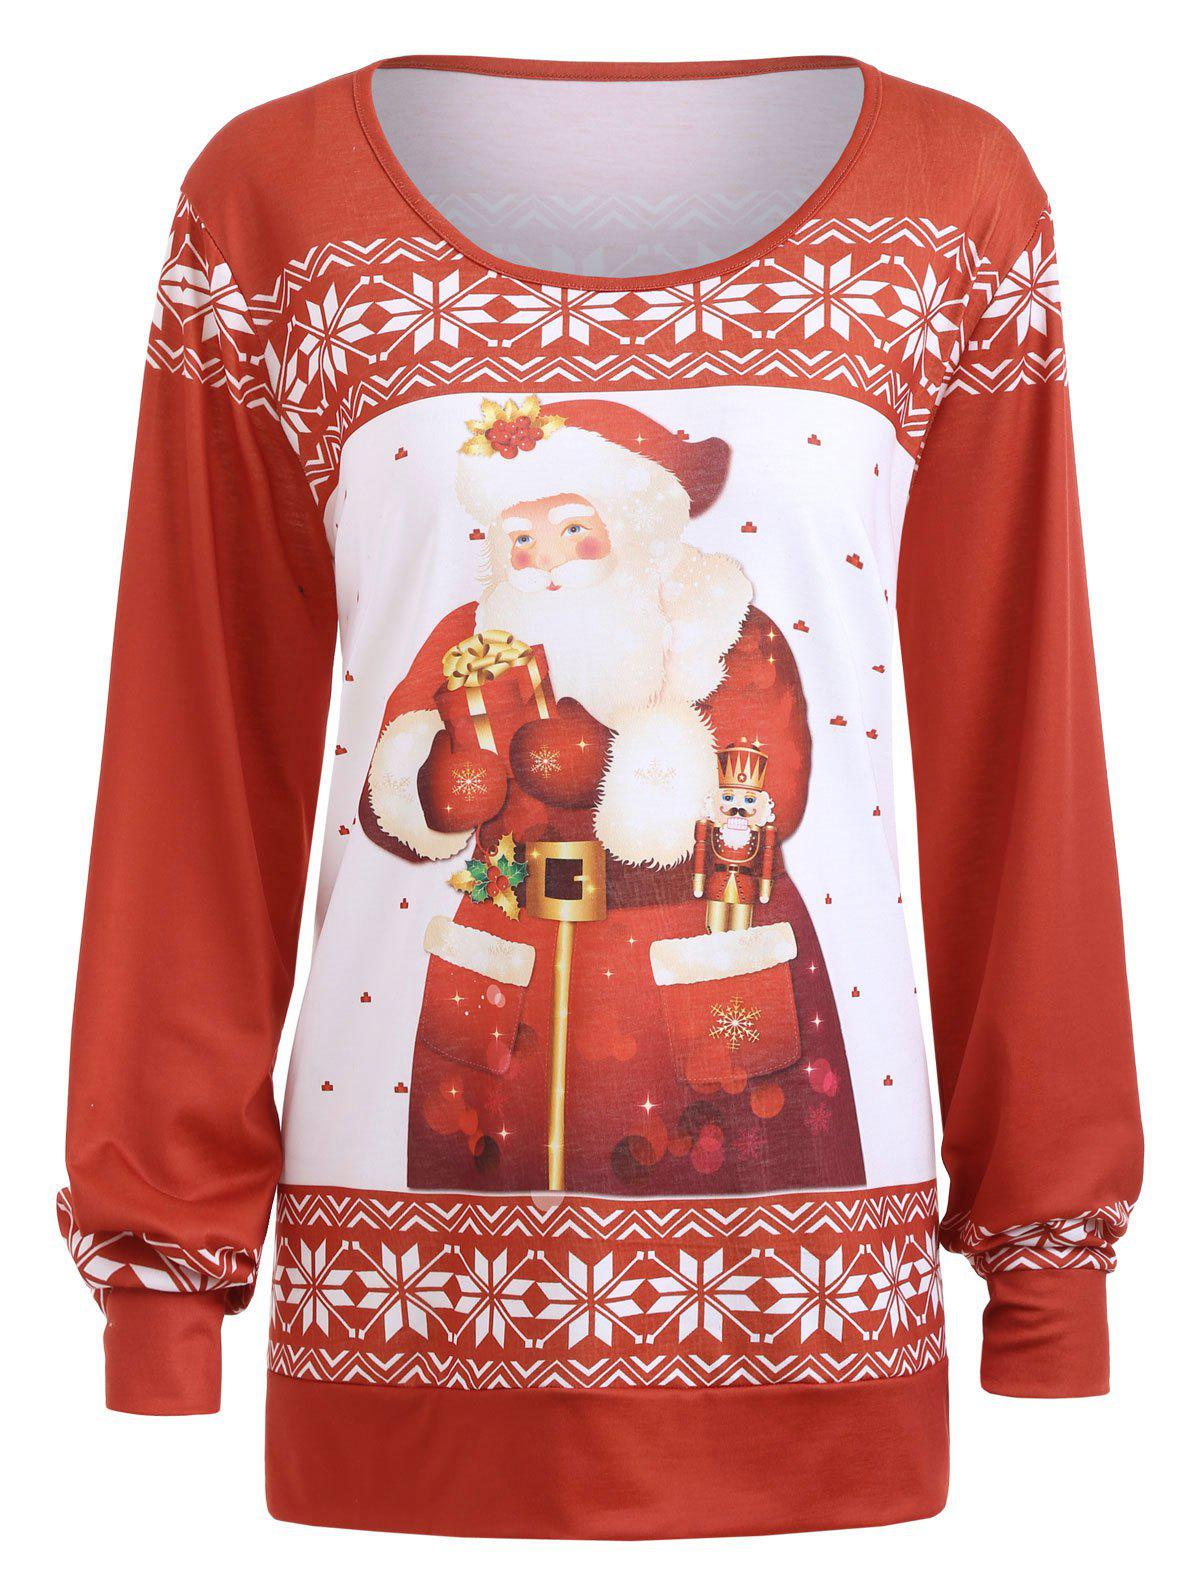 Plus Size Classic Christmas Santa Claus Printed Sweatshirt - RED 3XL